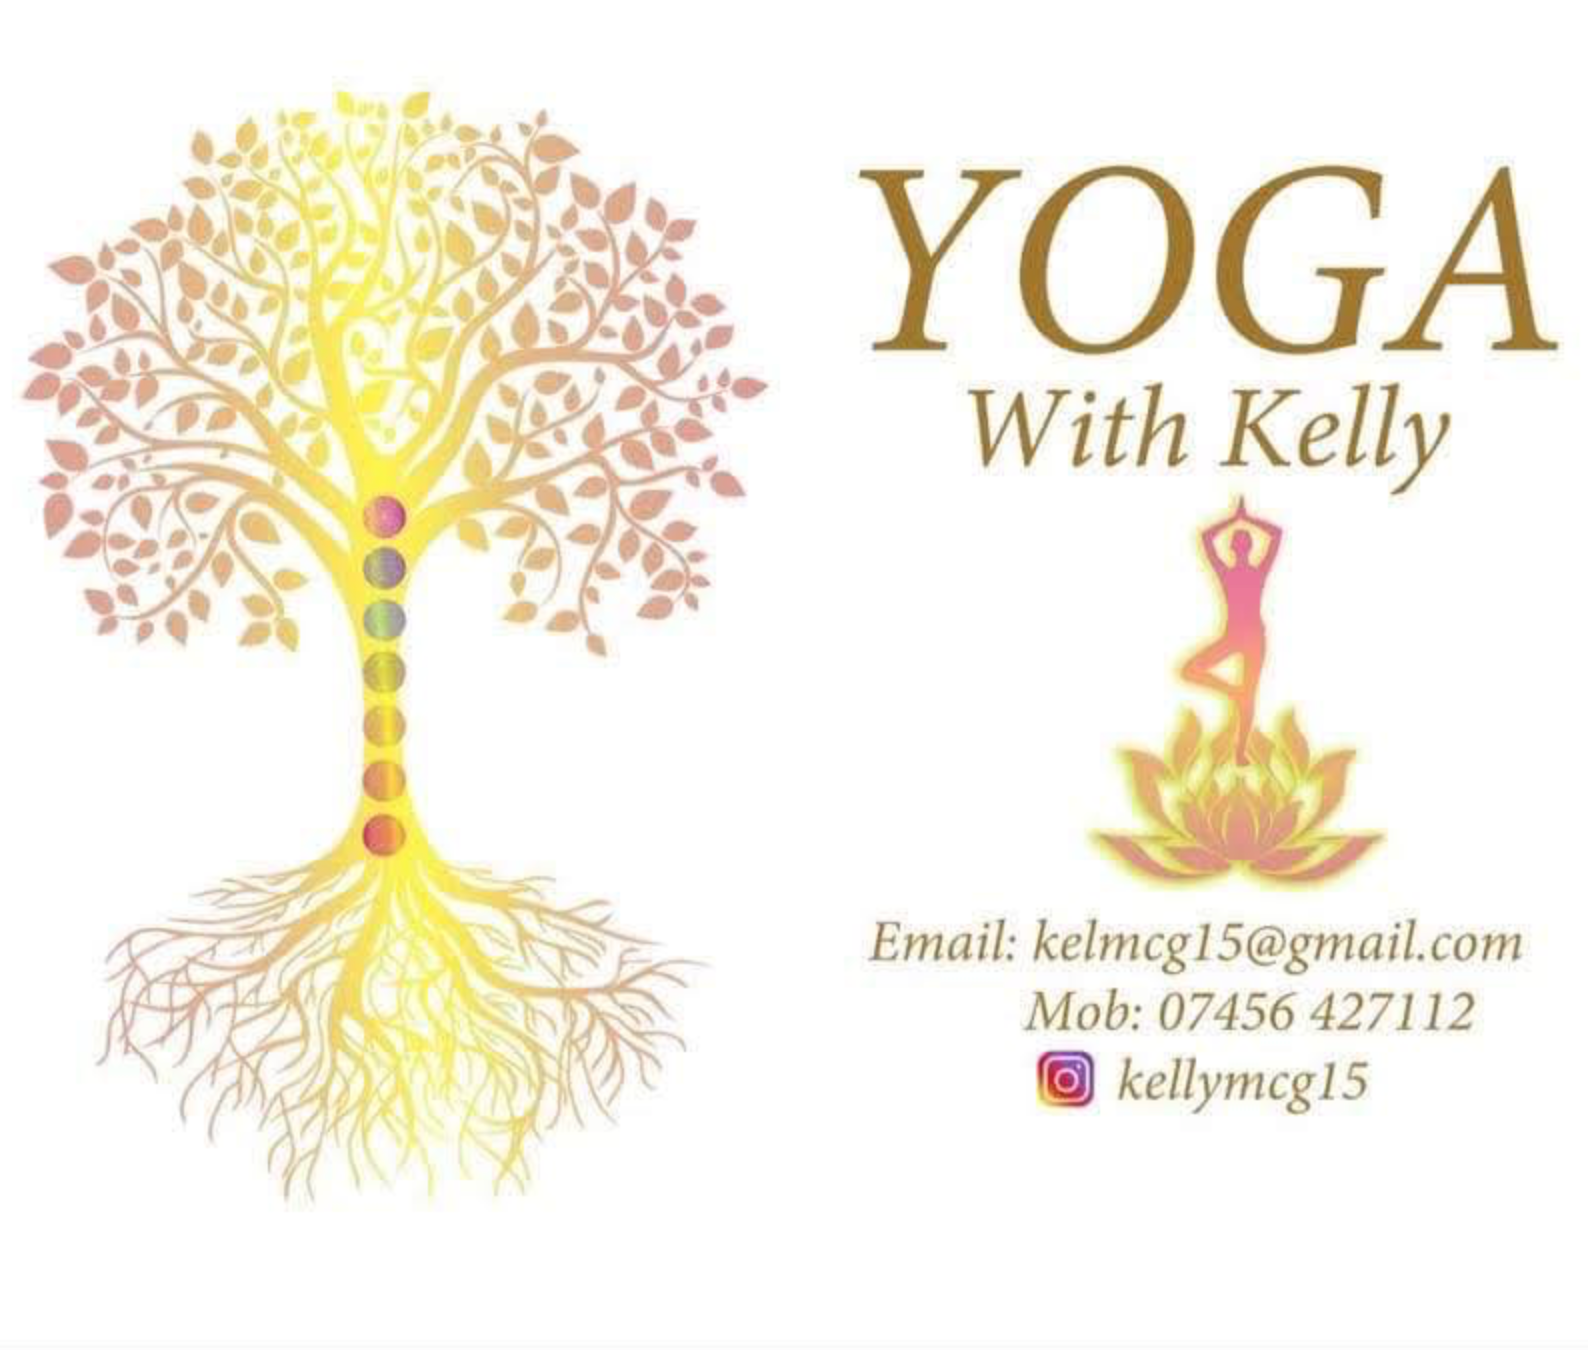 Yoga with Kelly